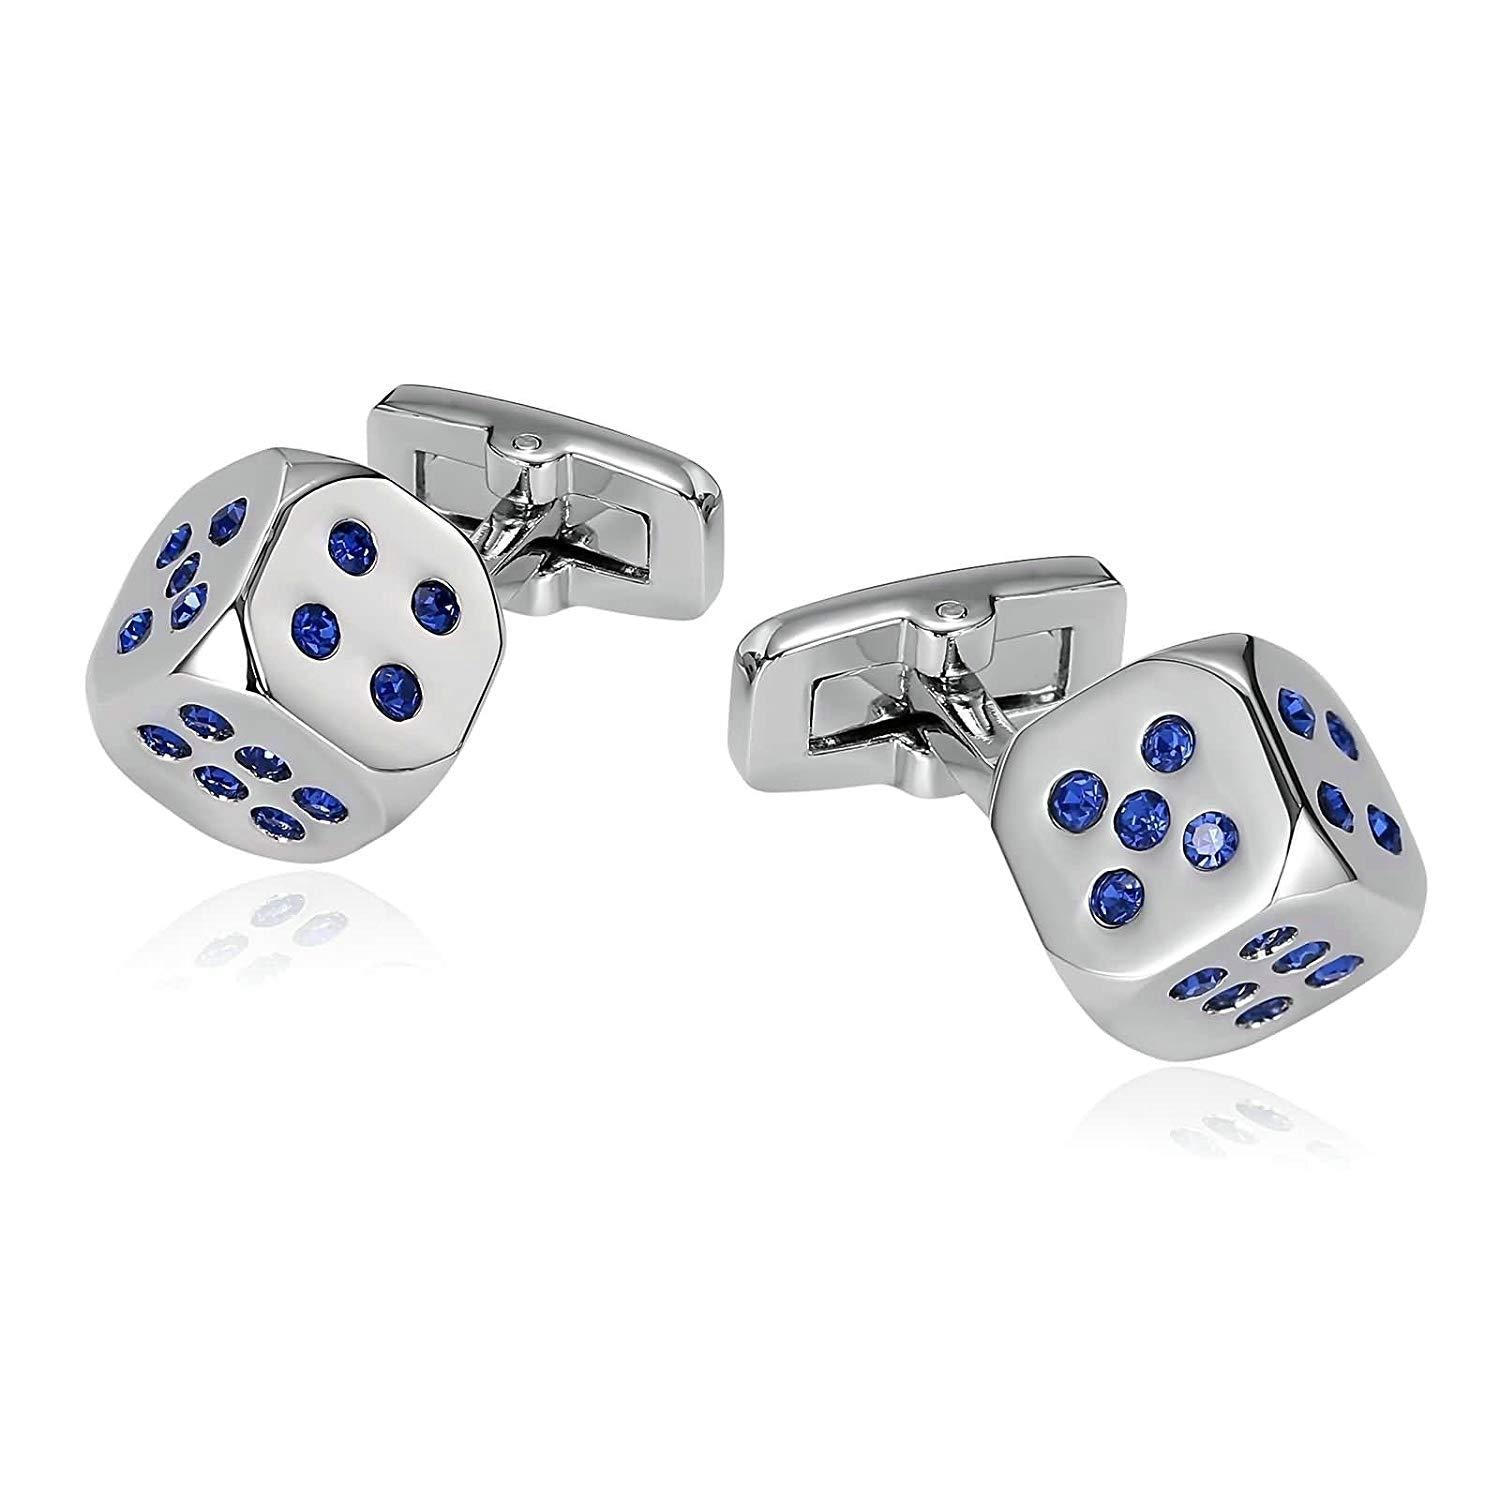 Adisaer Mens Stainless Steel Cuff Links Silver Blue Lucky Dice Crystal Mens Dress Shirt Cufflinks Gift